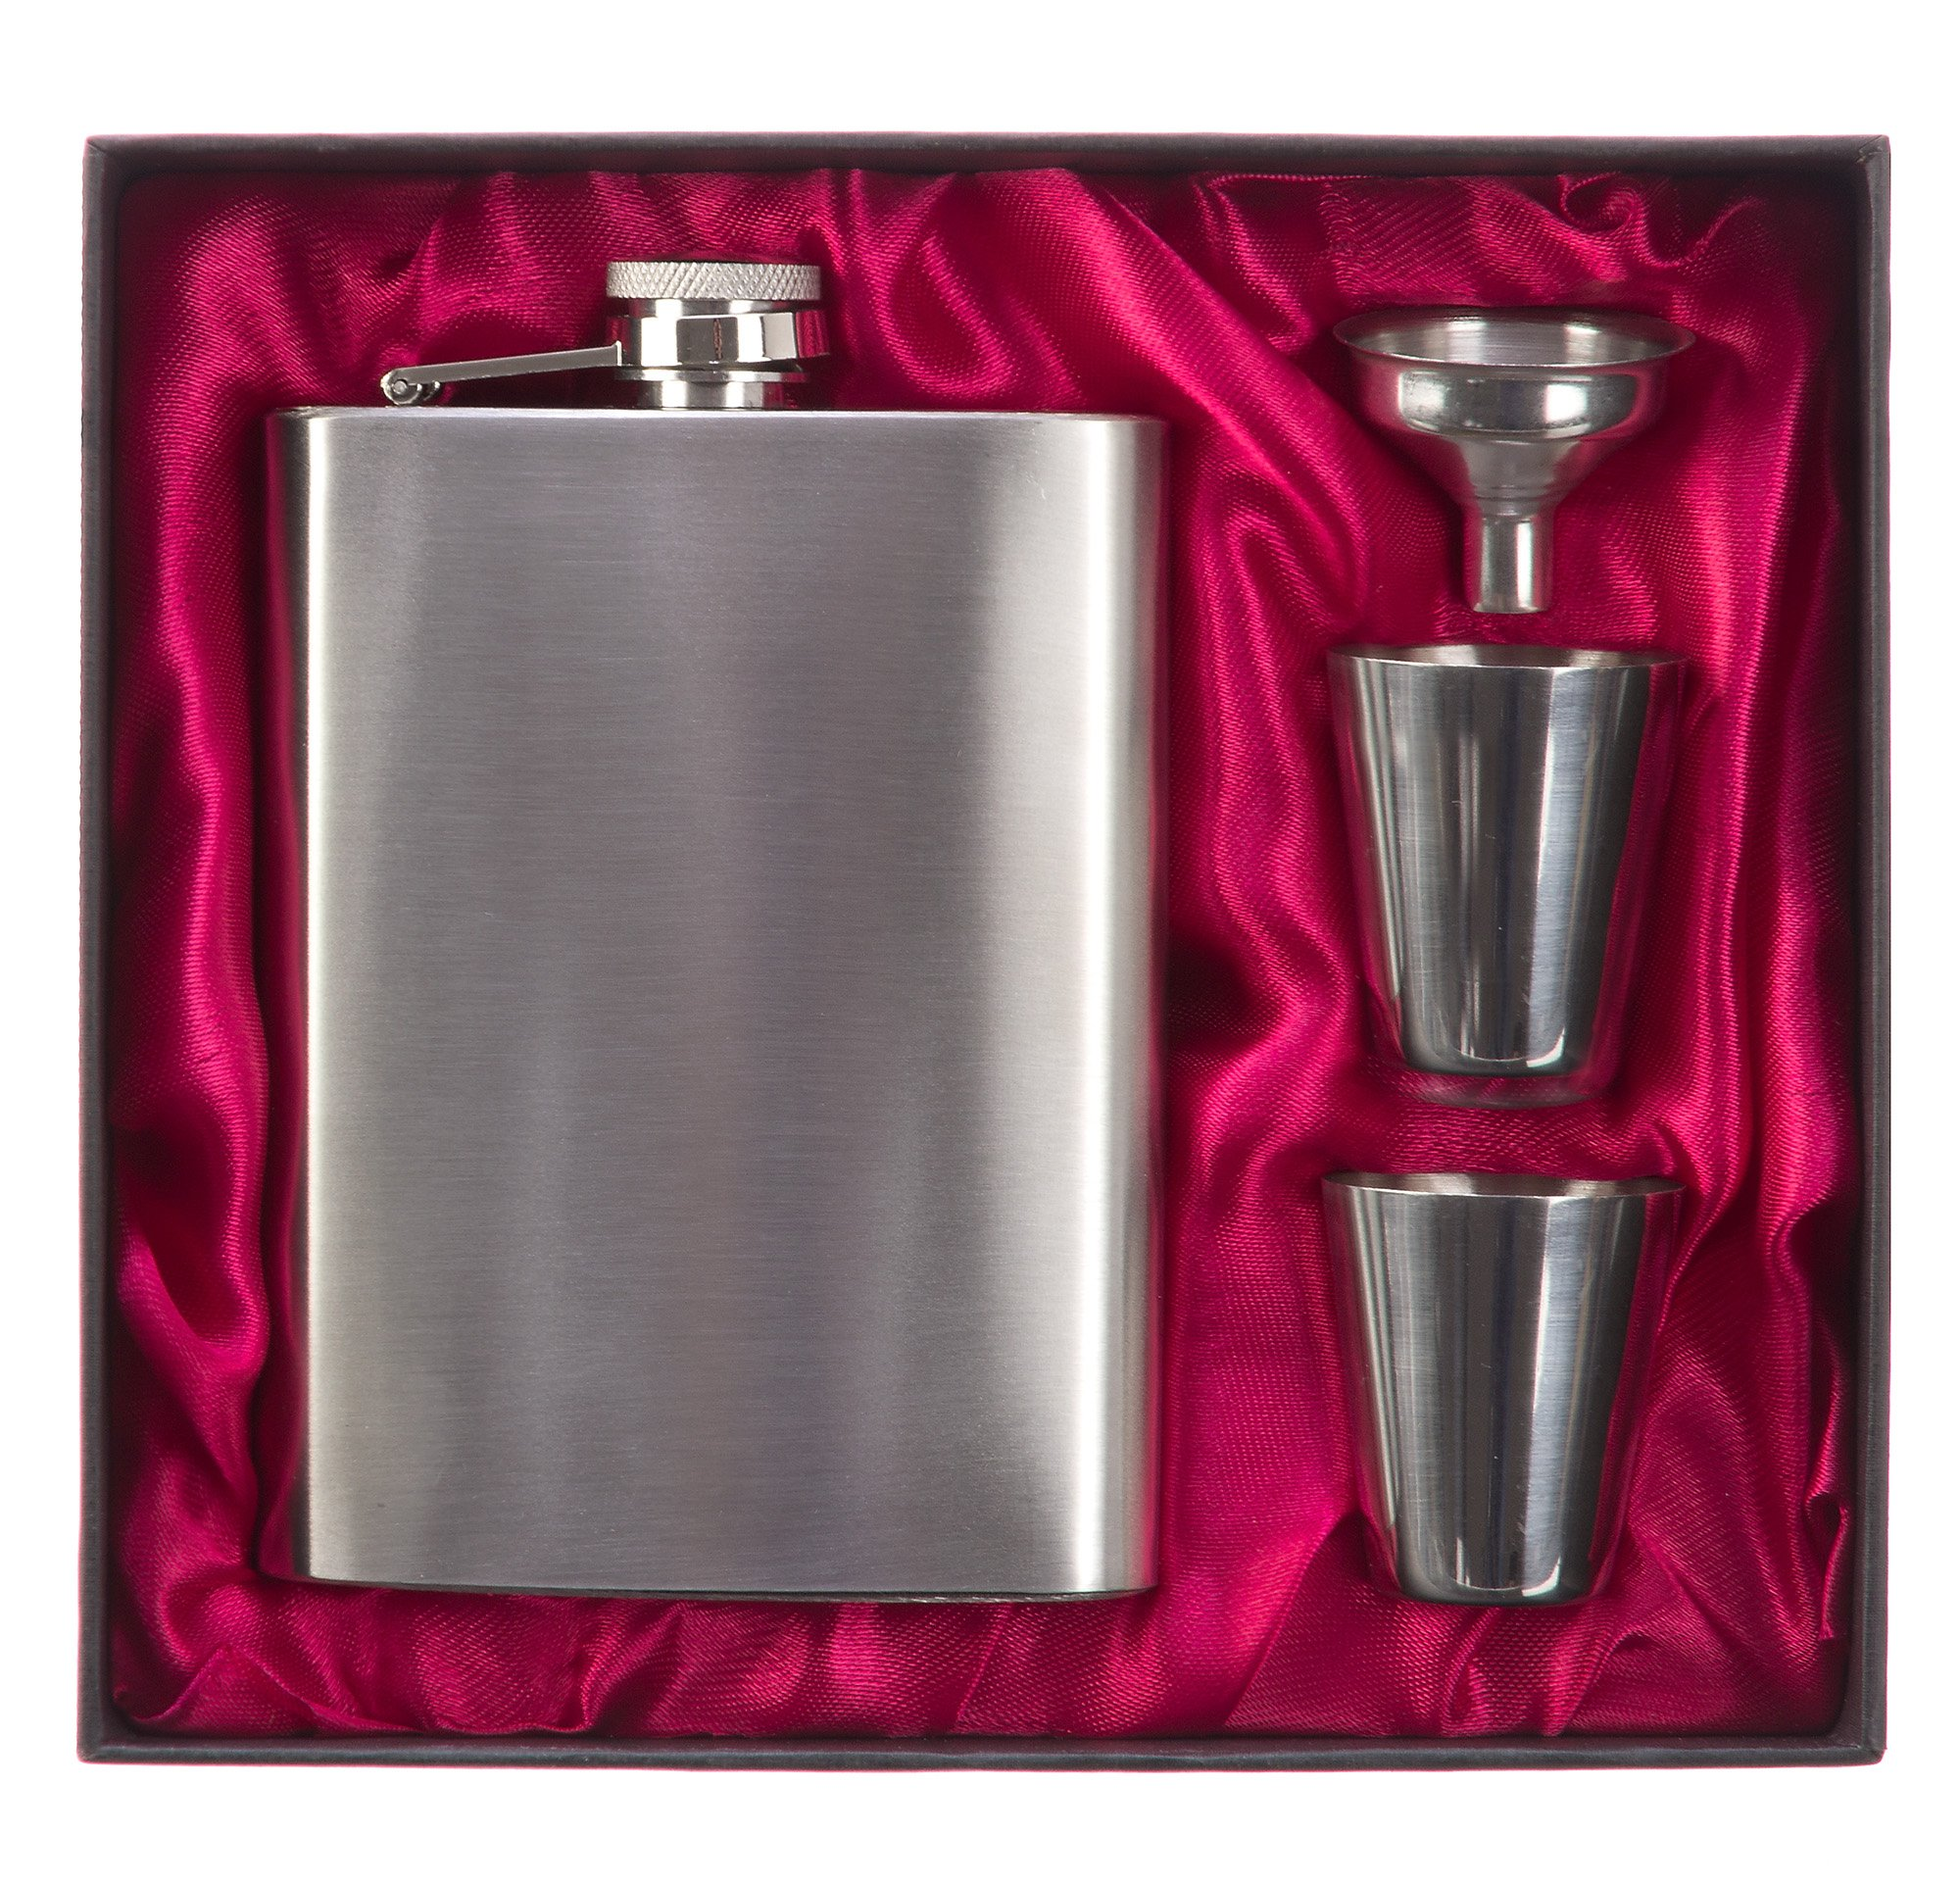 Hip Flask Set Silver 8 Oz 100% Stainless Steel(304/18-8 SS).Bonus 2 Shot Glass+1Funnel+1Giftbox.Flask Leak Proof Tested.Flasks for Liquor/Alcohol.Flask for Men/Women.Great Gift Option!By DonHill